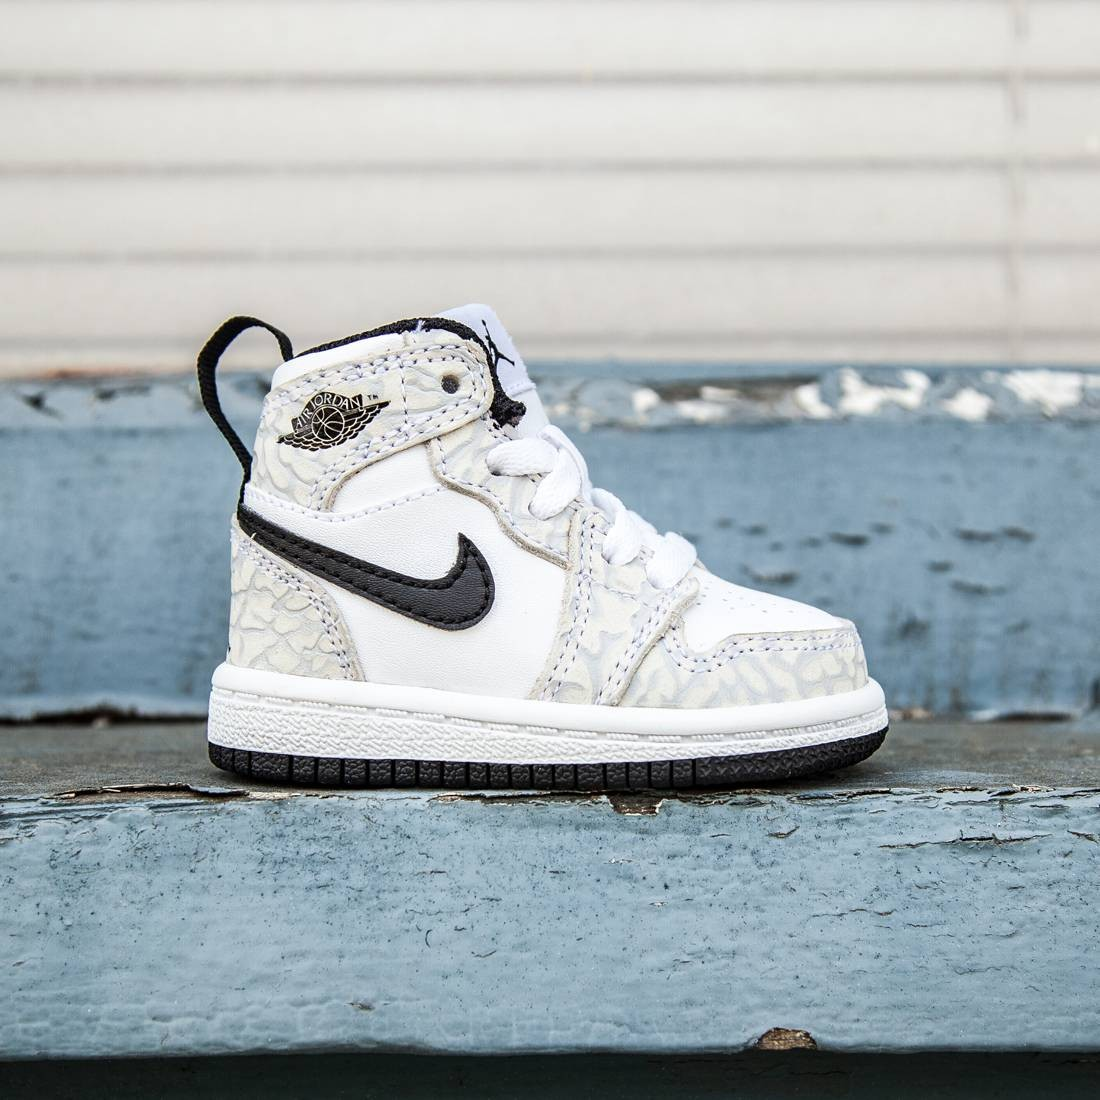 Air Jordan 1 Retro High Premium BT Toddlers (white / black / pure platinum)